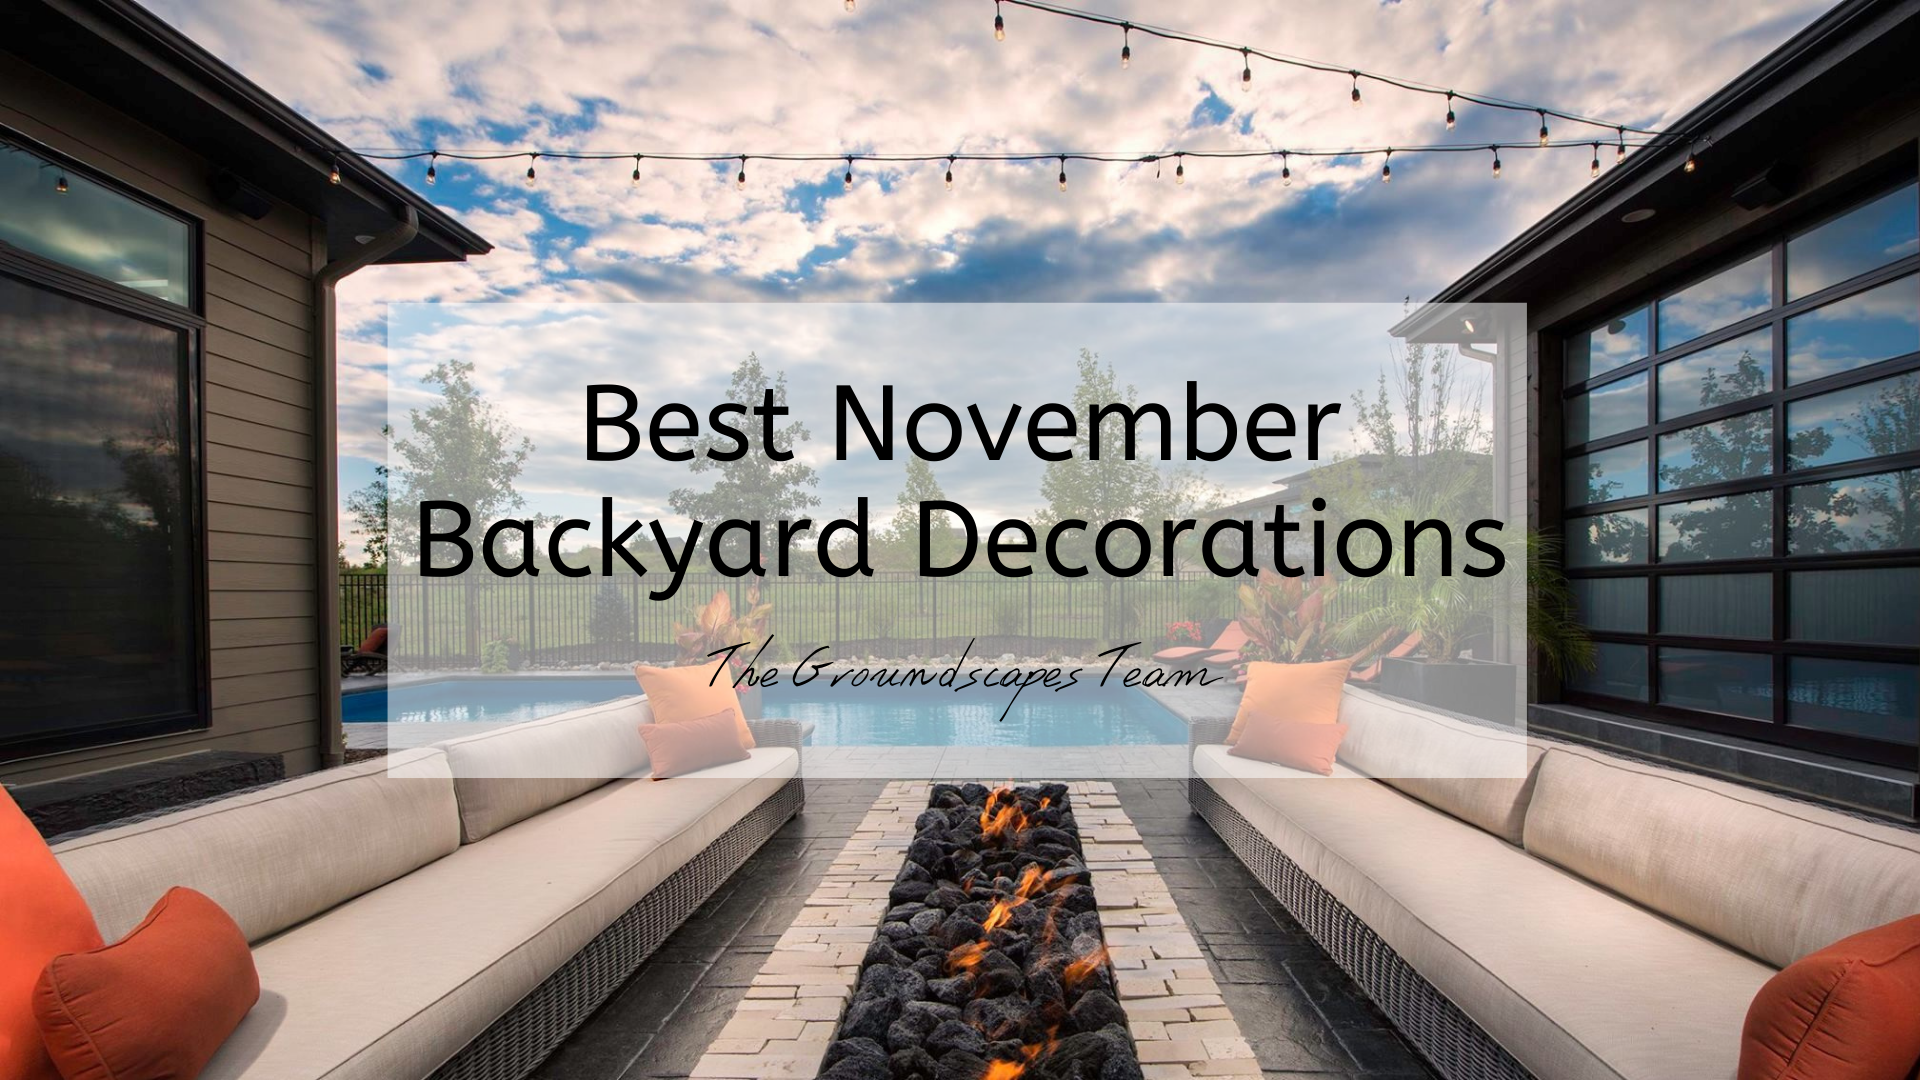 Best November Backyard Decorations